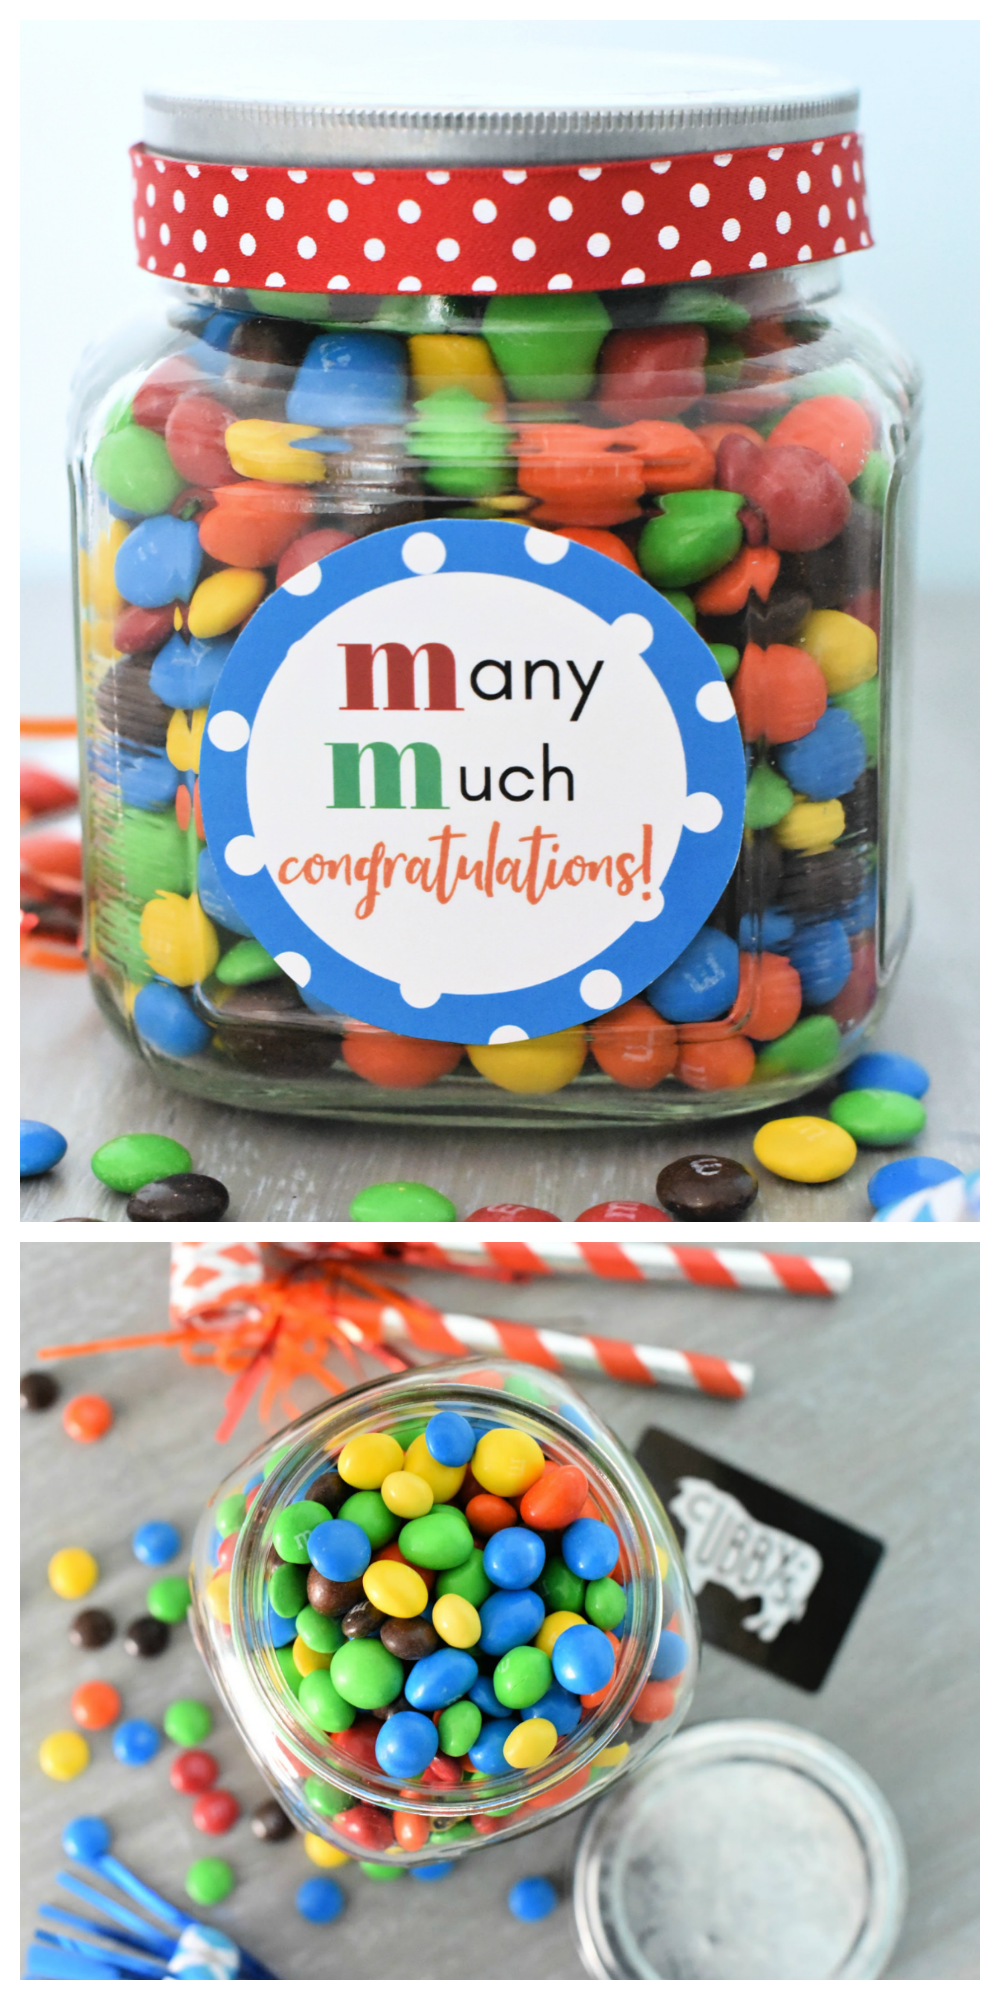 Easy Congratulations Gift Idea-Fill a jar with M&Ms and add this cute tag to make a simple congrats gift for friends! #congratulations #gifts #giftideas